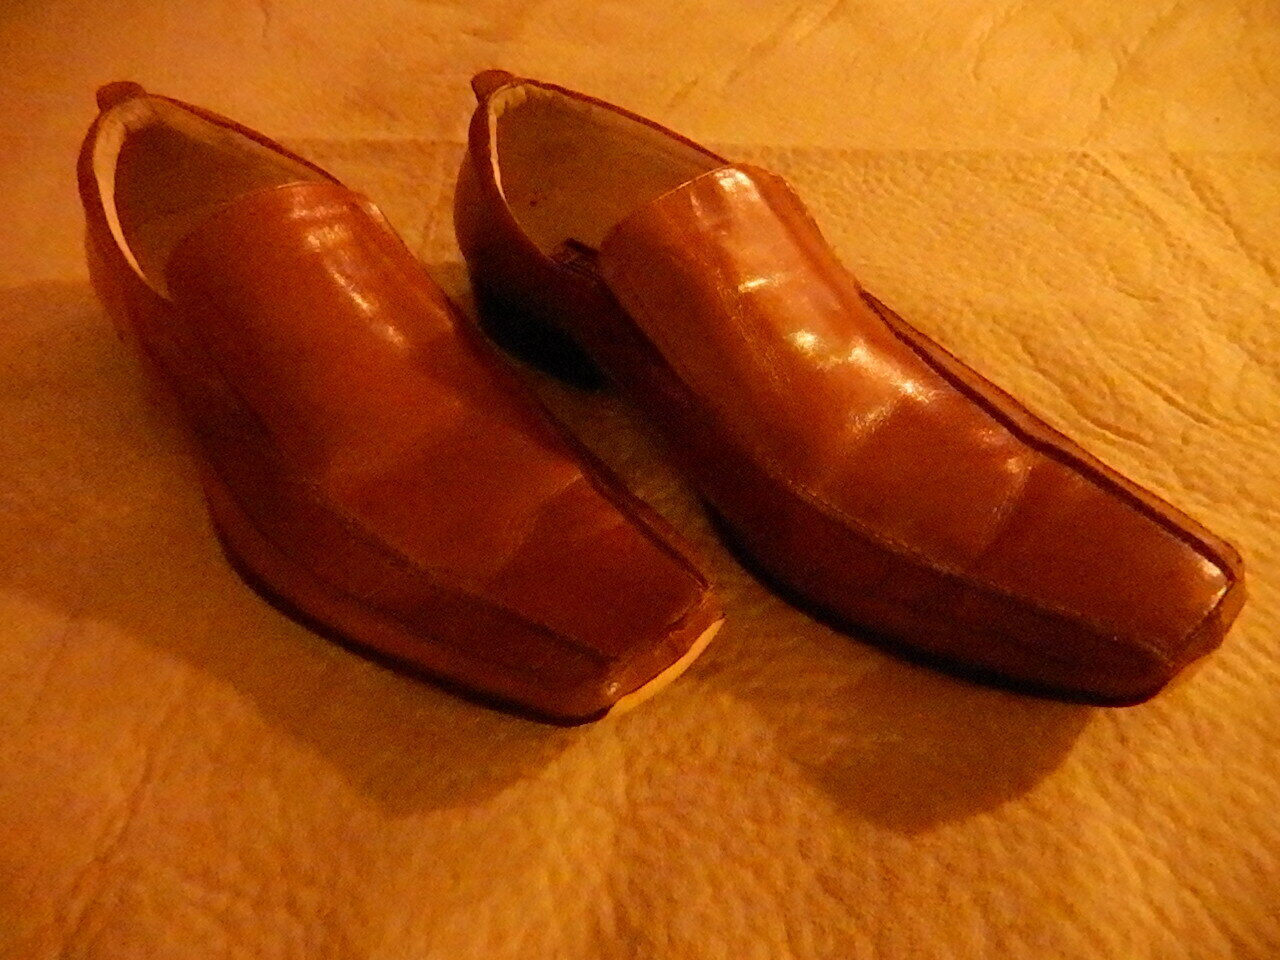 Stacy Adams mens dress shoes very soft leather w croco print, bike toe size 11 M